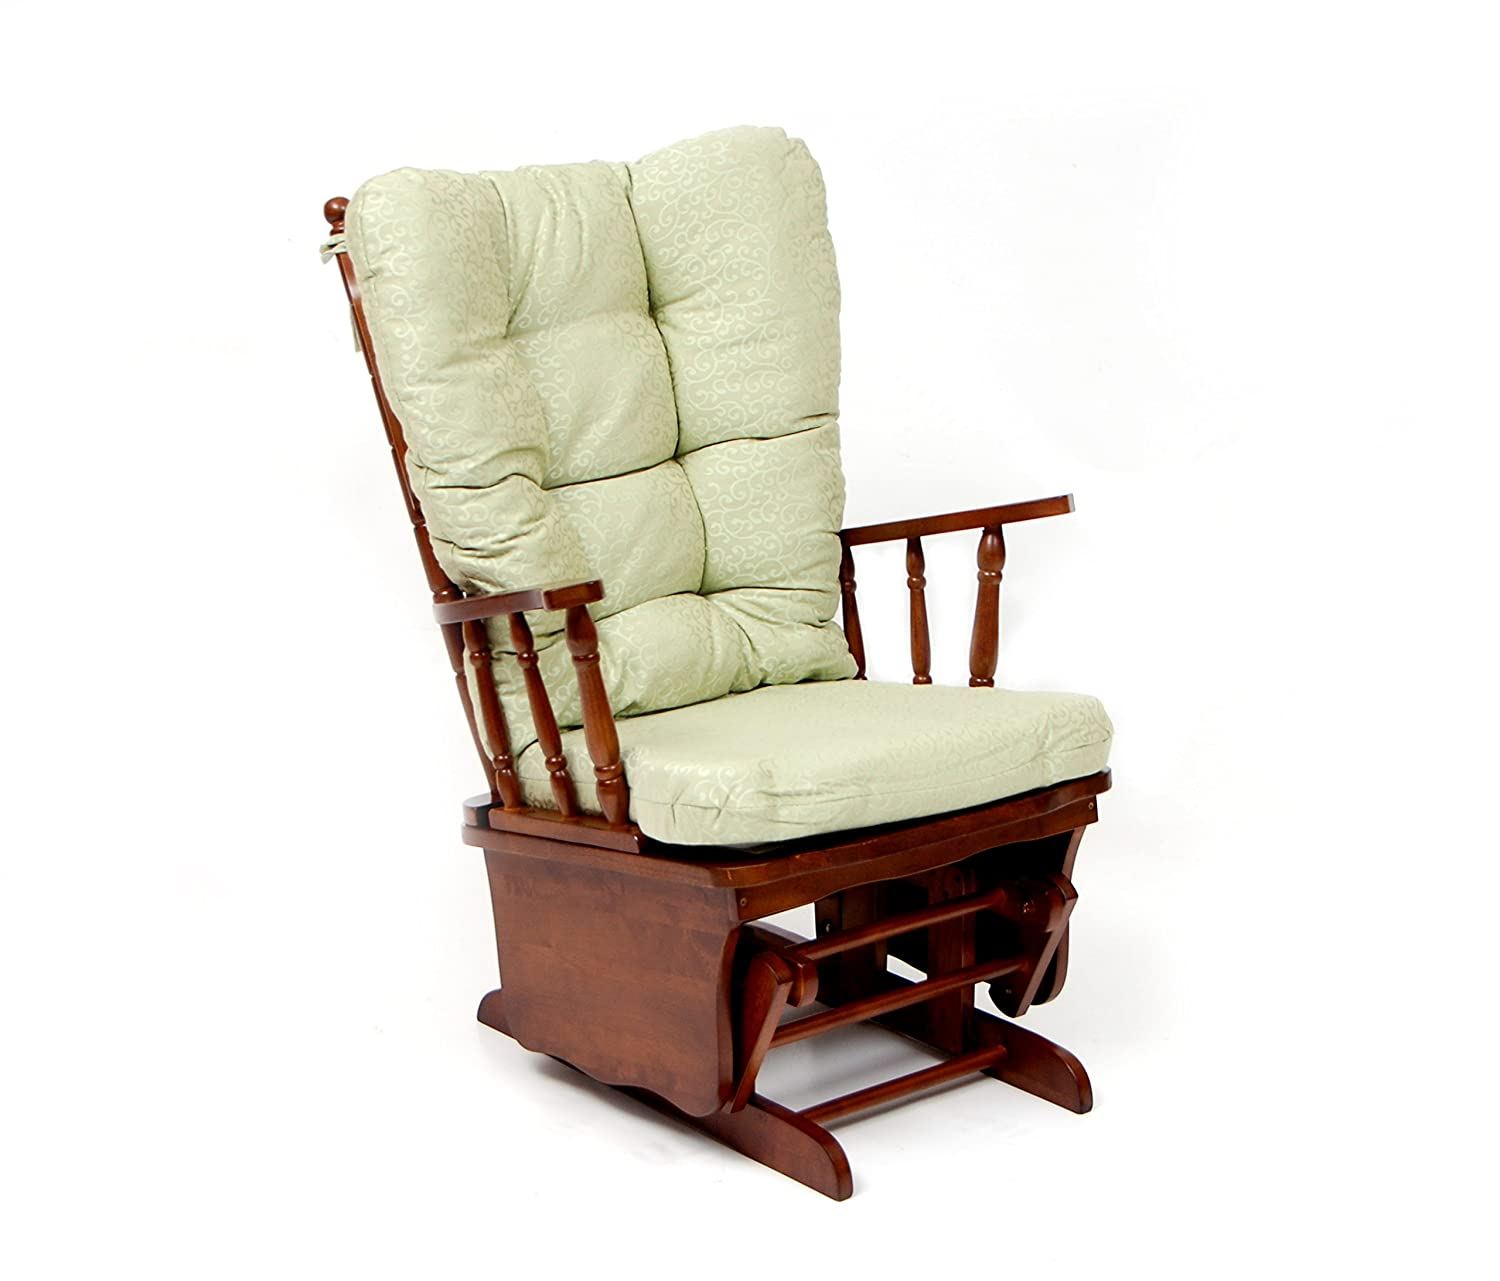 Wooden Rocking Armchair Chair Relax Elderly Disabled Residence TV